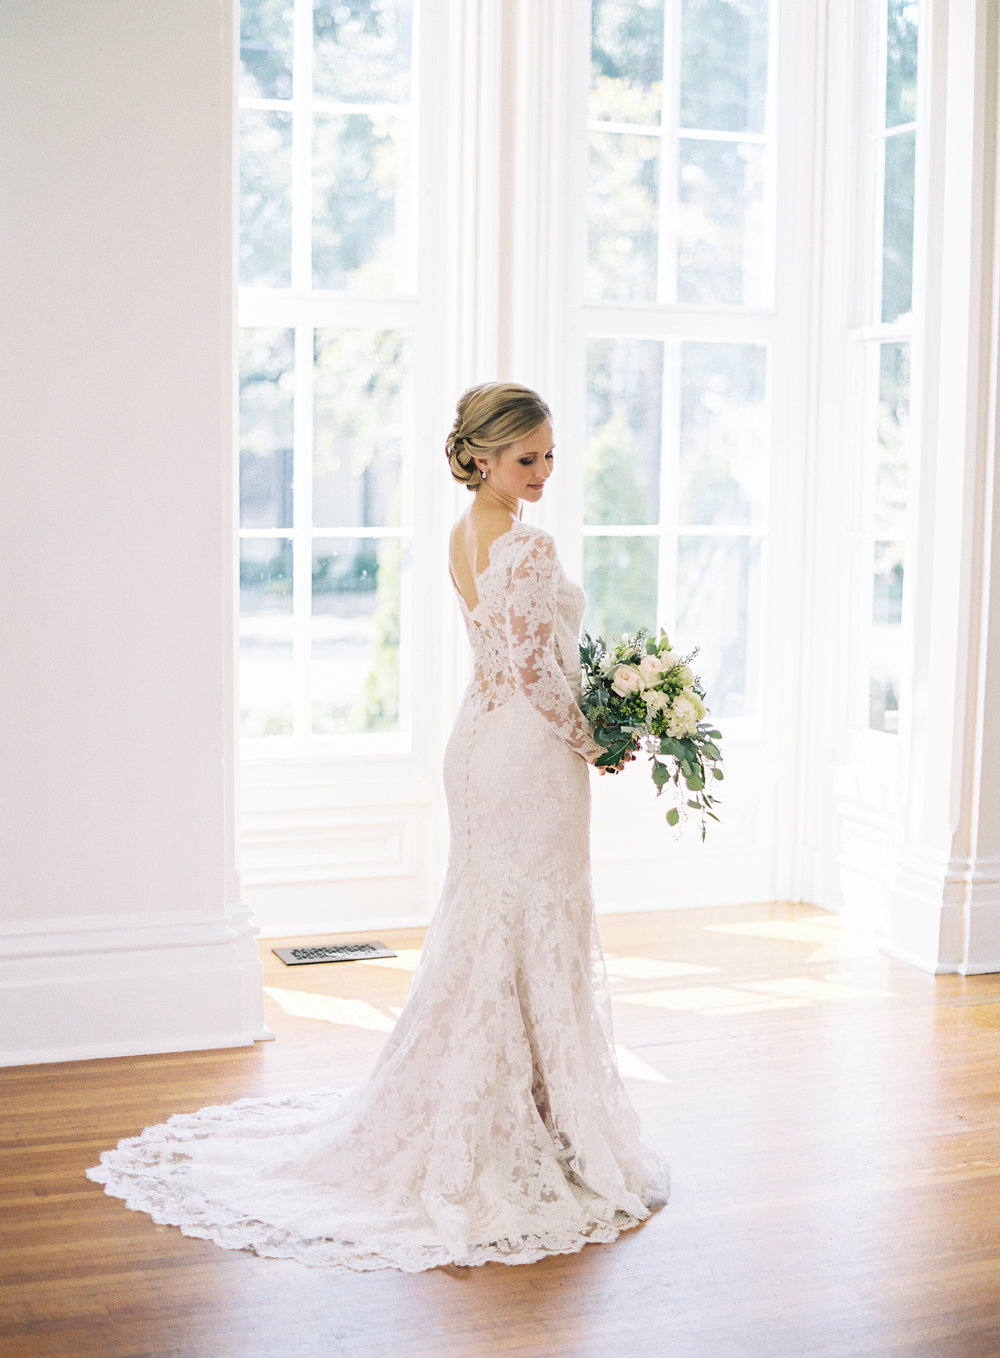 Bridal portrait Merrimon wynne house downtown raleigh North Carolina